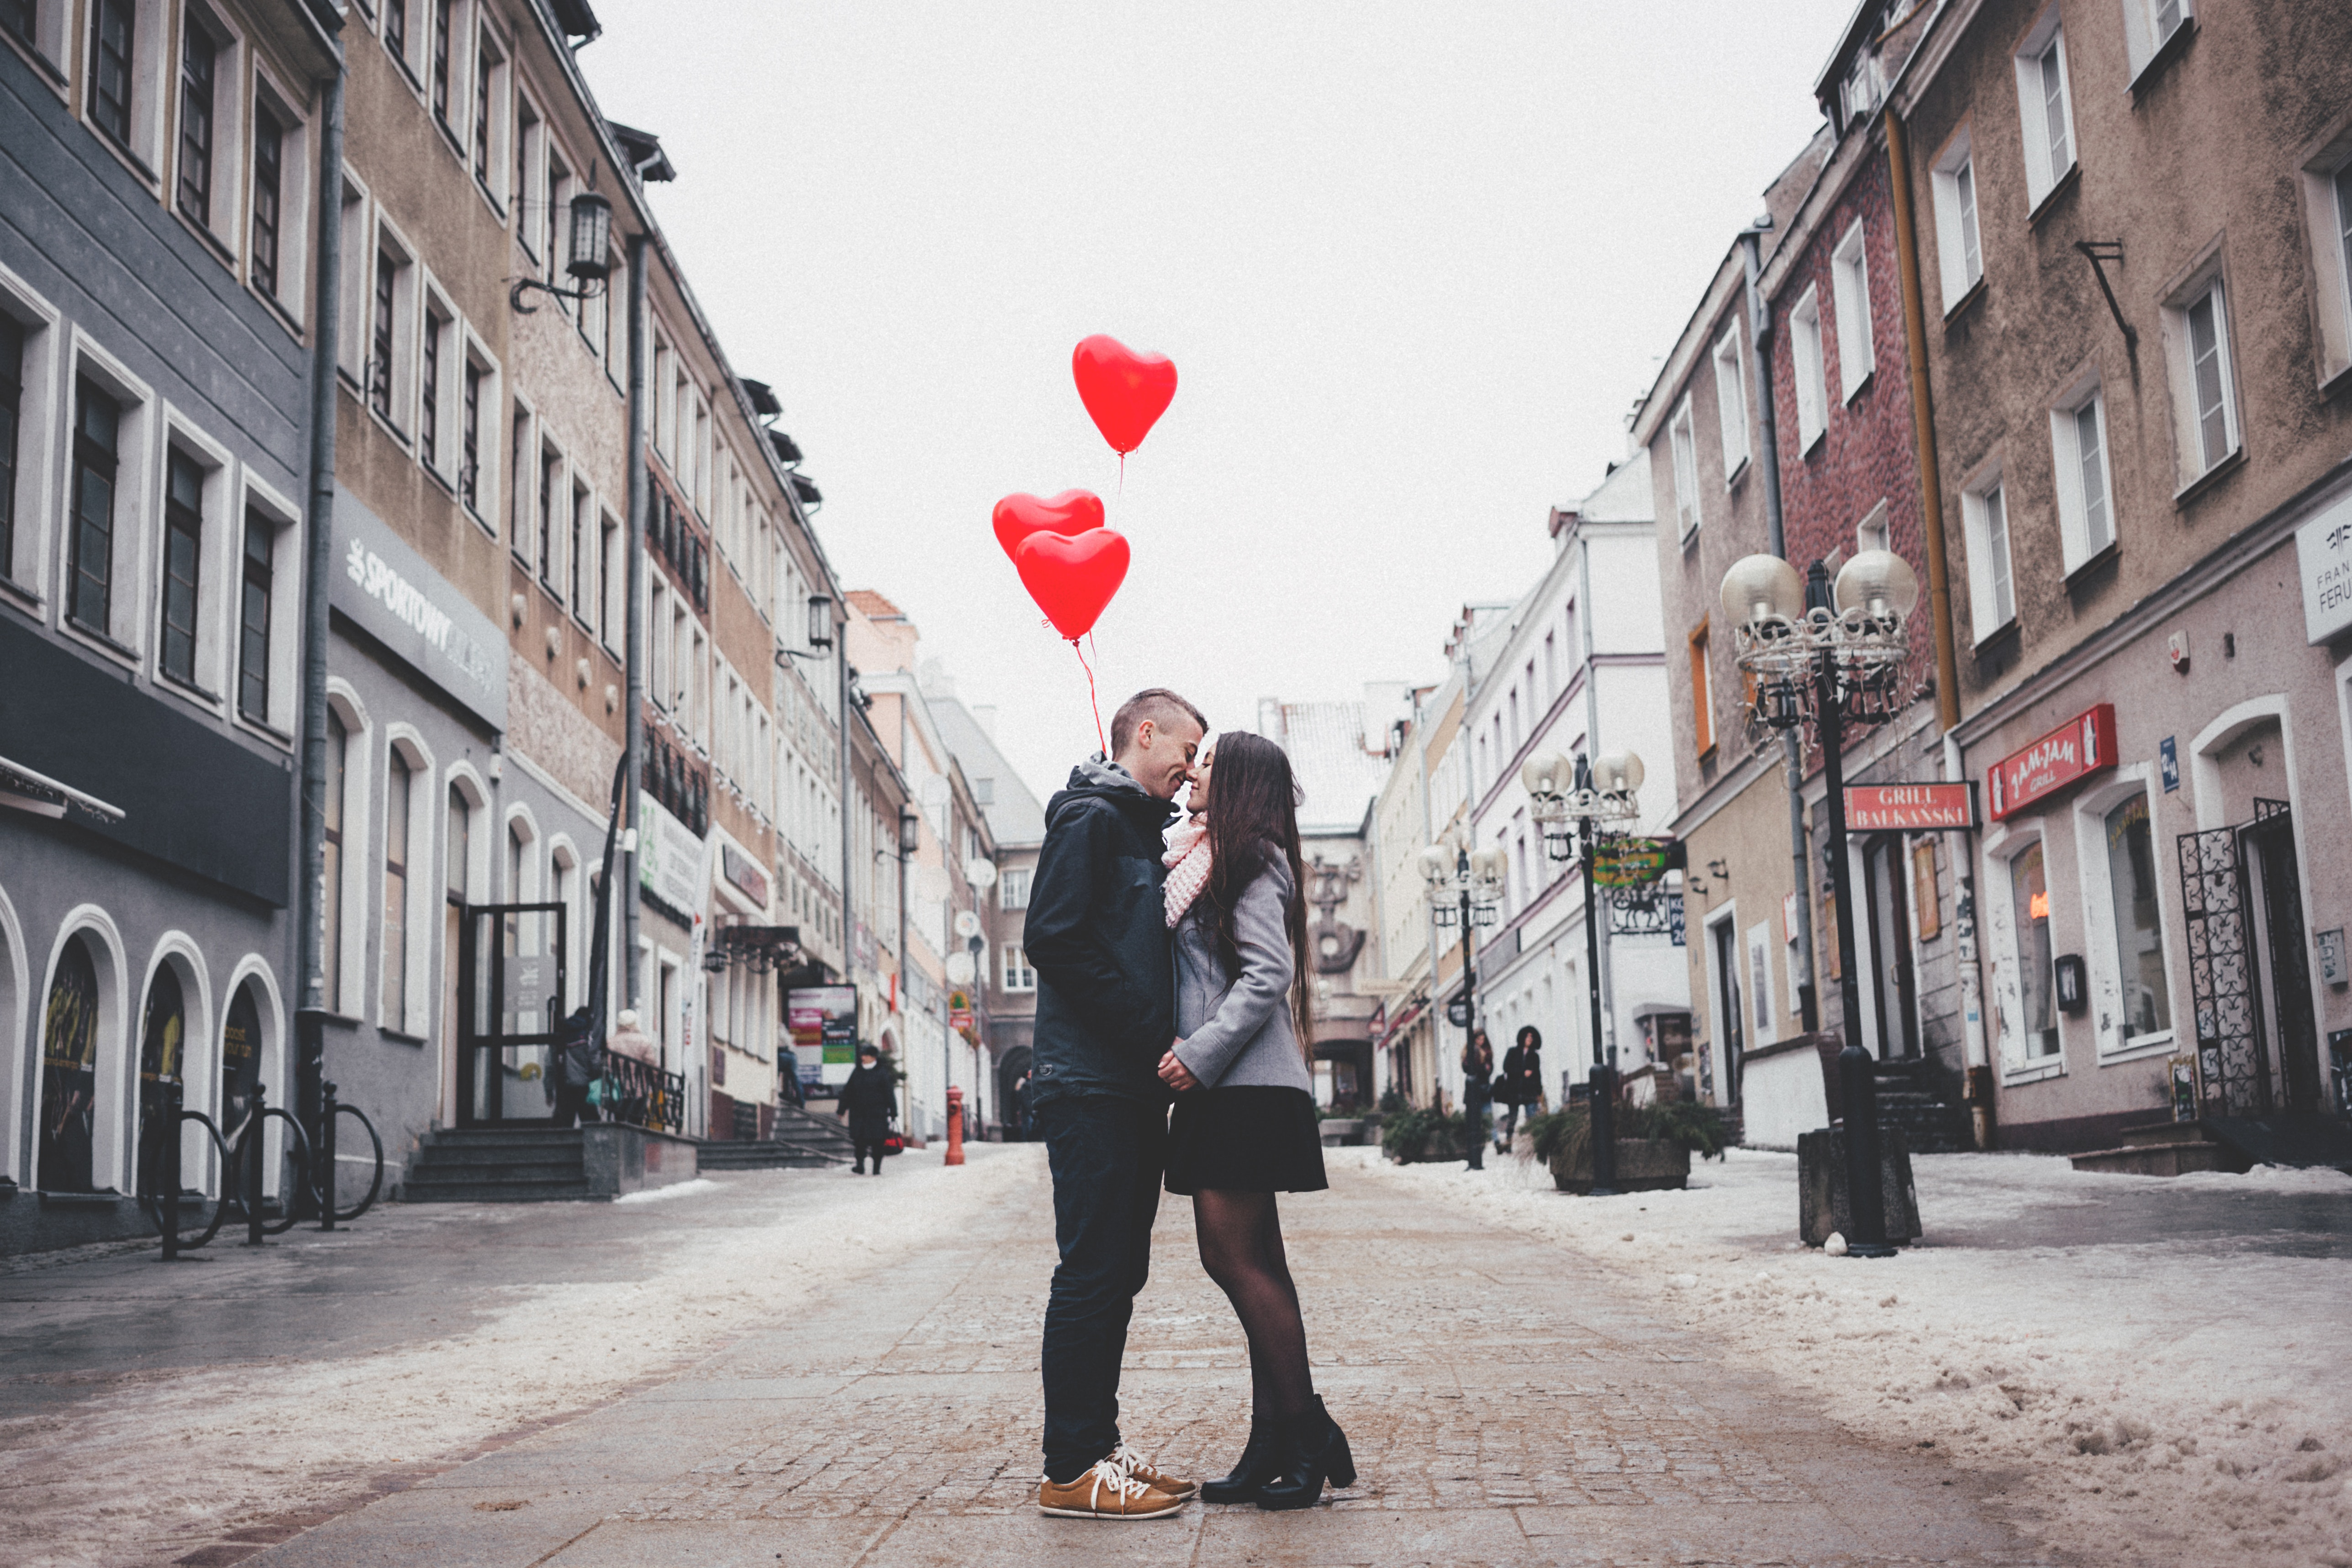 Timeless valentine's day gift ideas for 2021